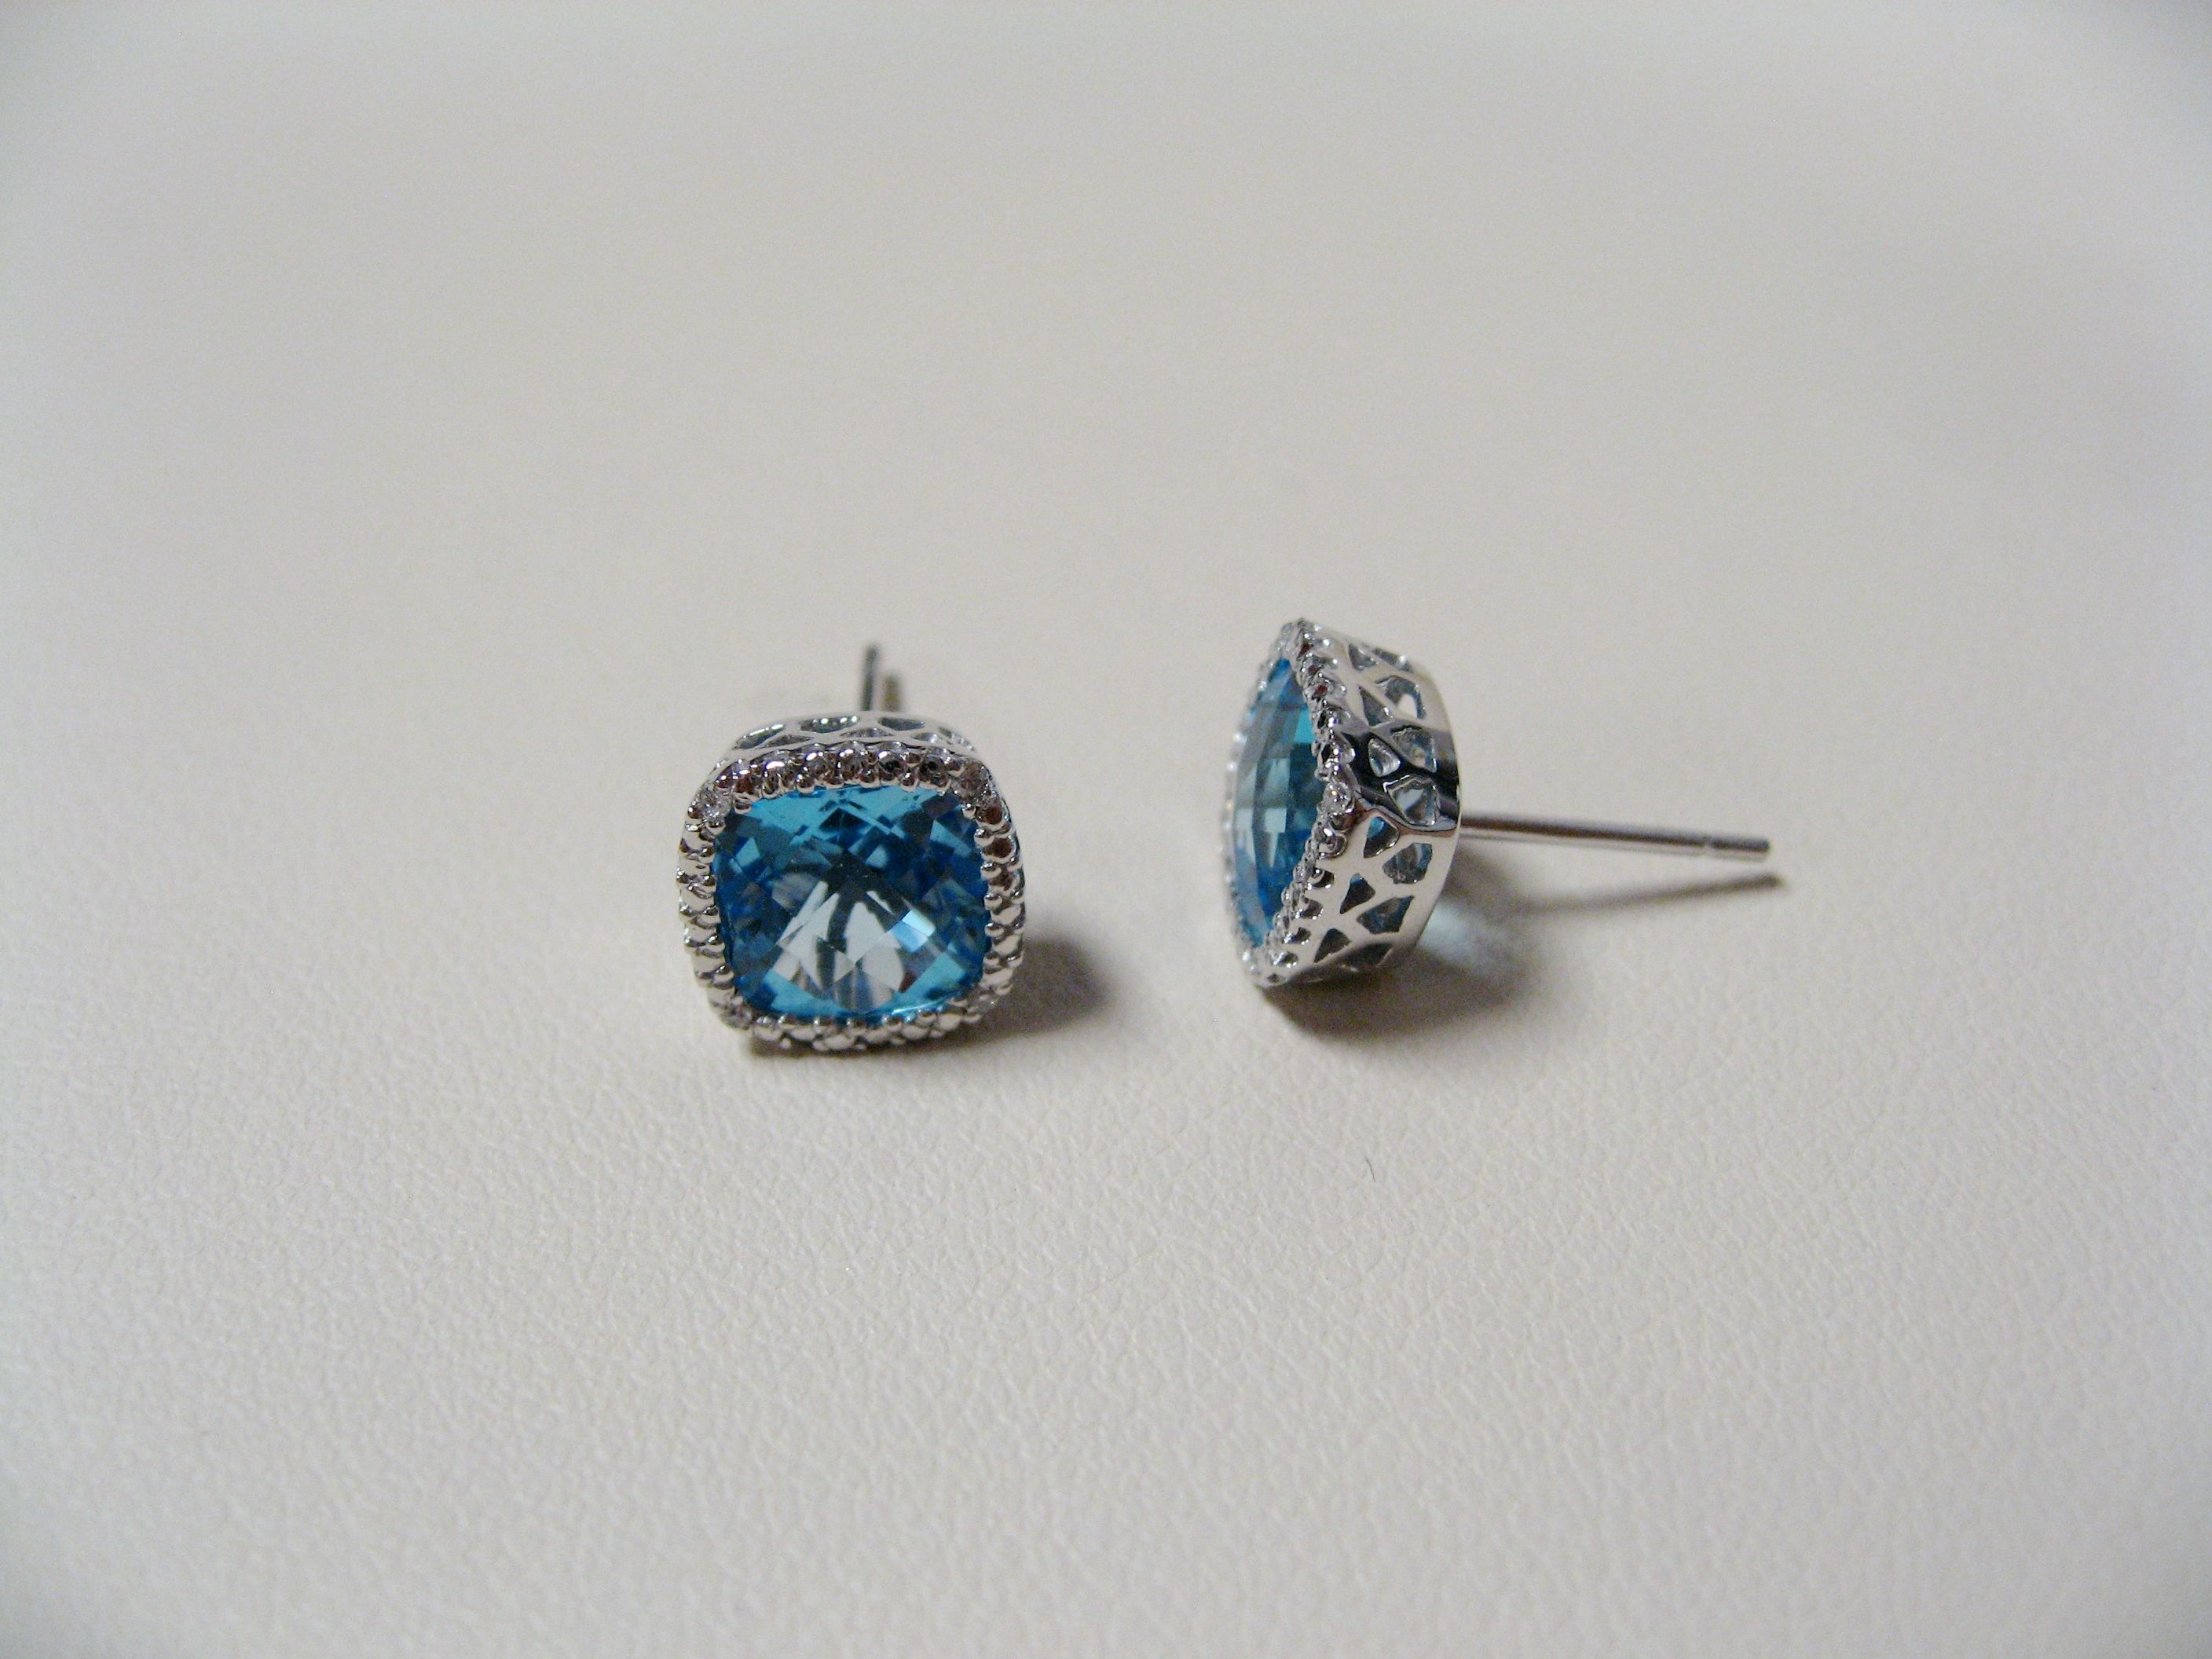 14KW Swiss Blue Earrings with 7mm stones and 4 diamonds in each.